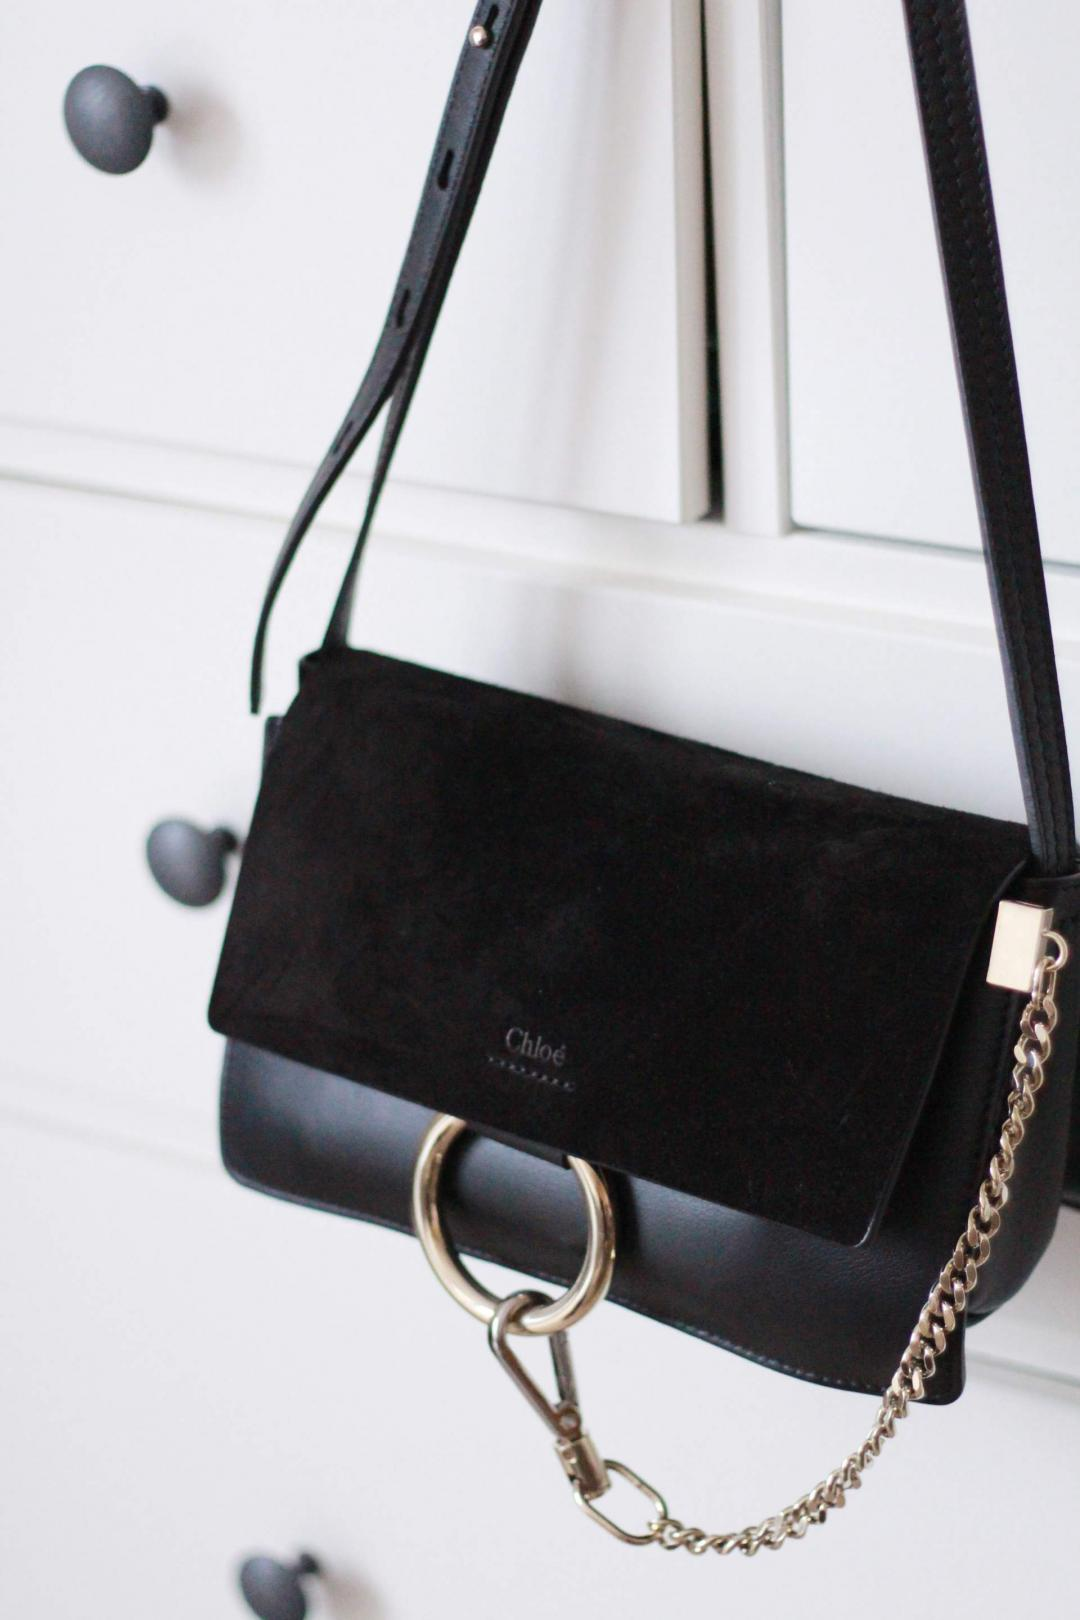 chloe-faye-bag-small-black-leather-suede-mix-gold-harware